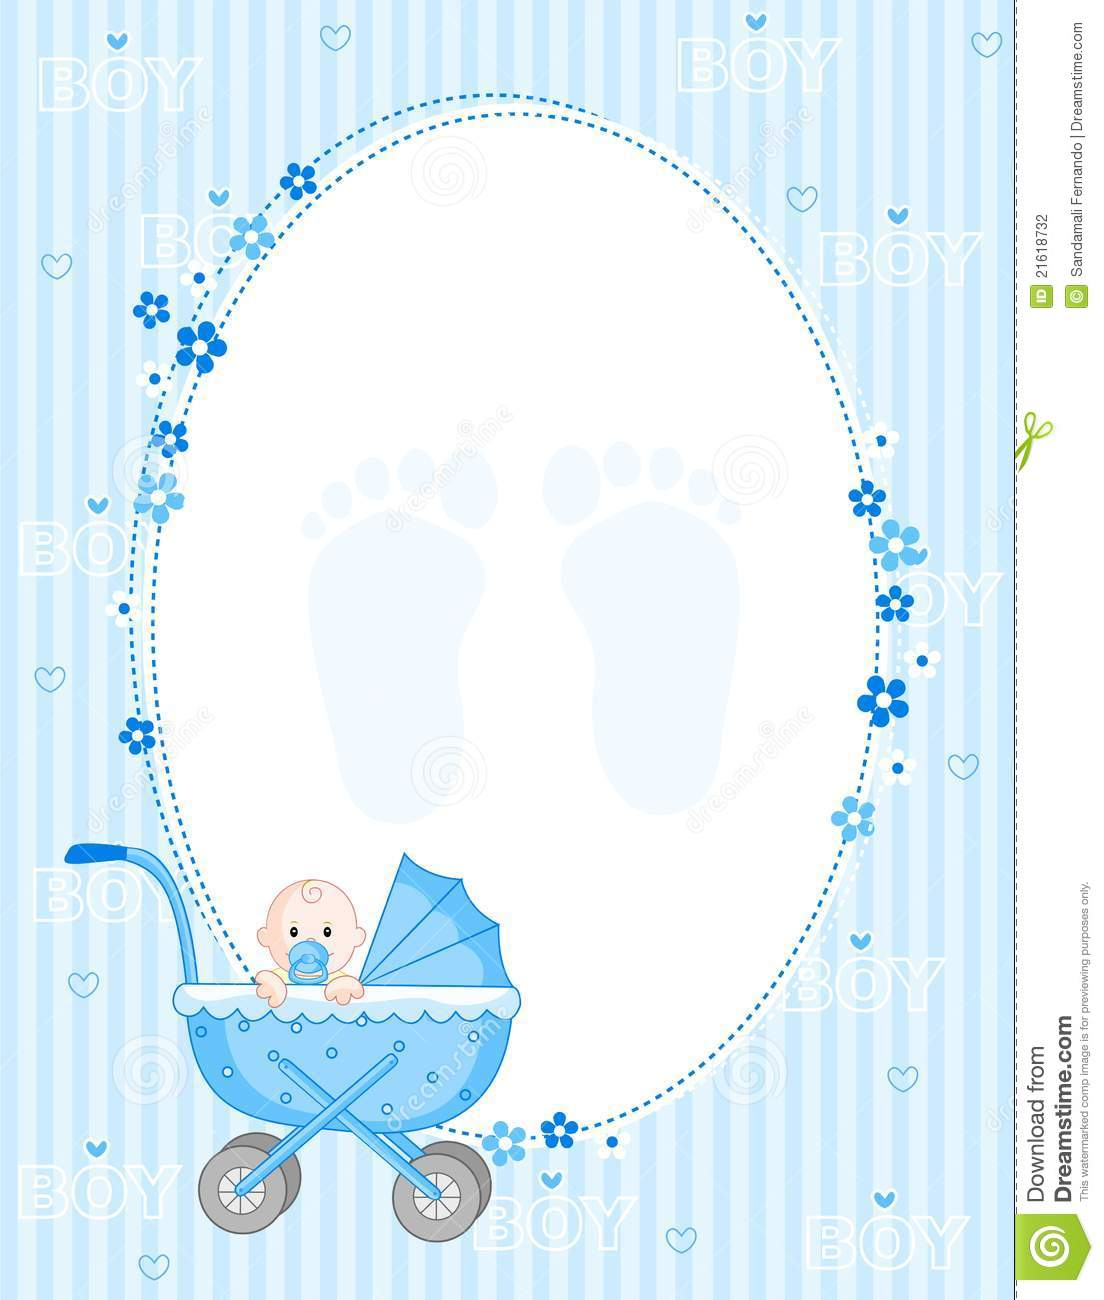 1104x1300 - Baby Background Pictures 41